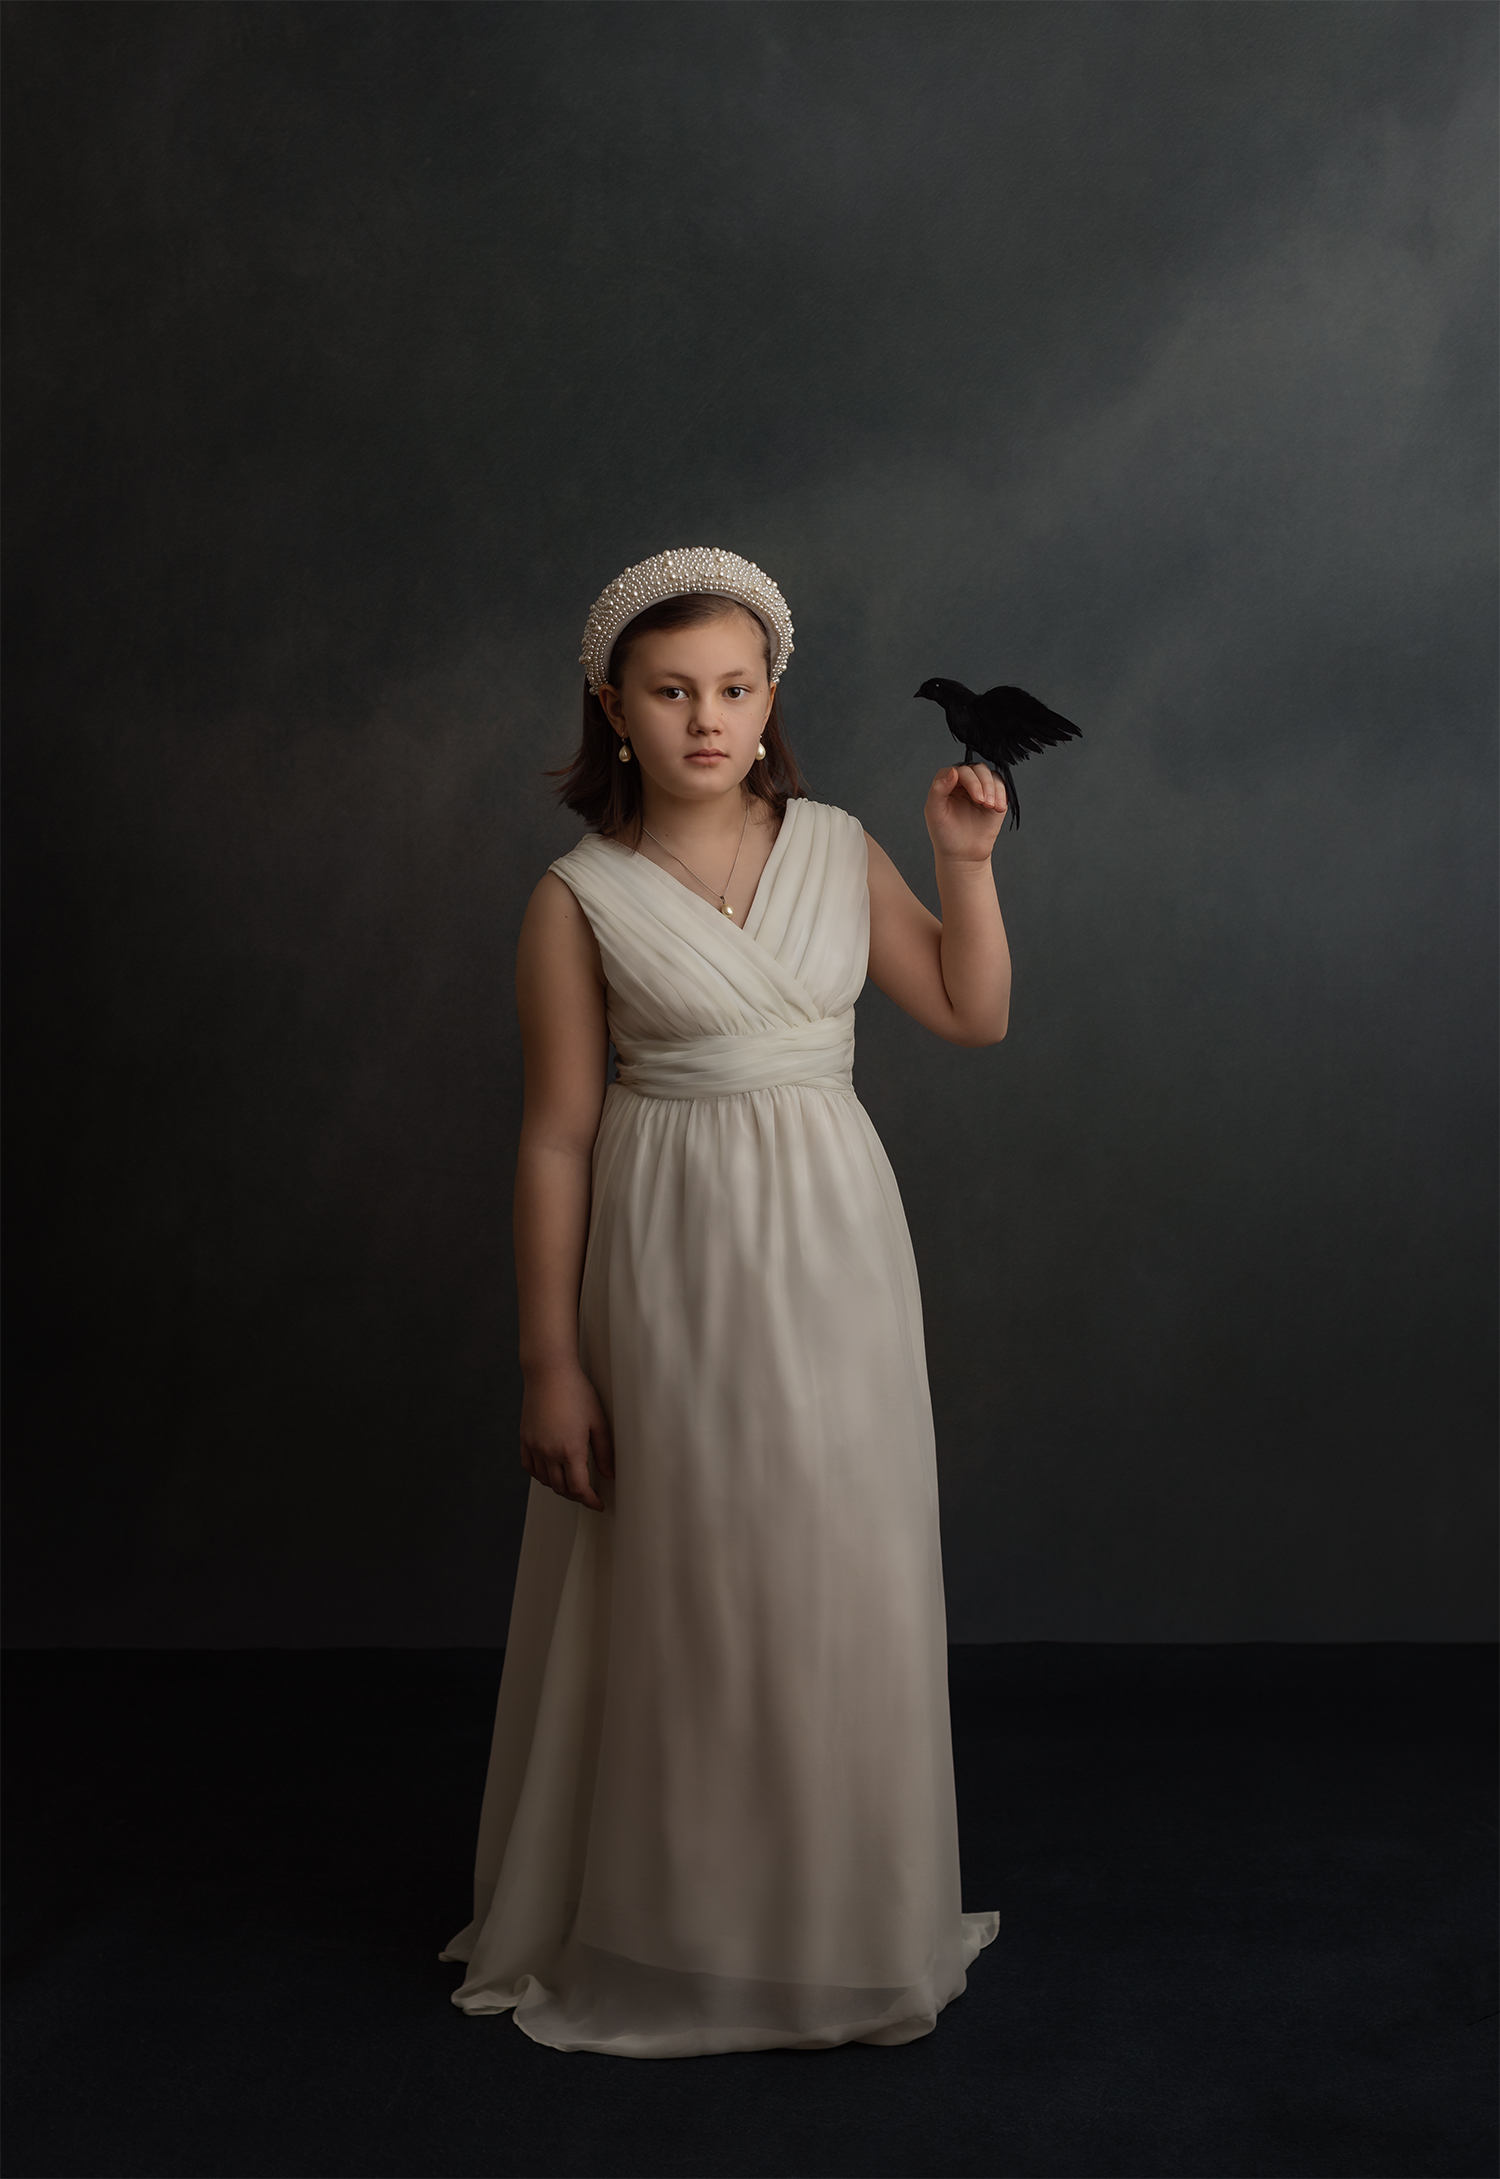 Young girl in white dress with black bird perched on her raised hand